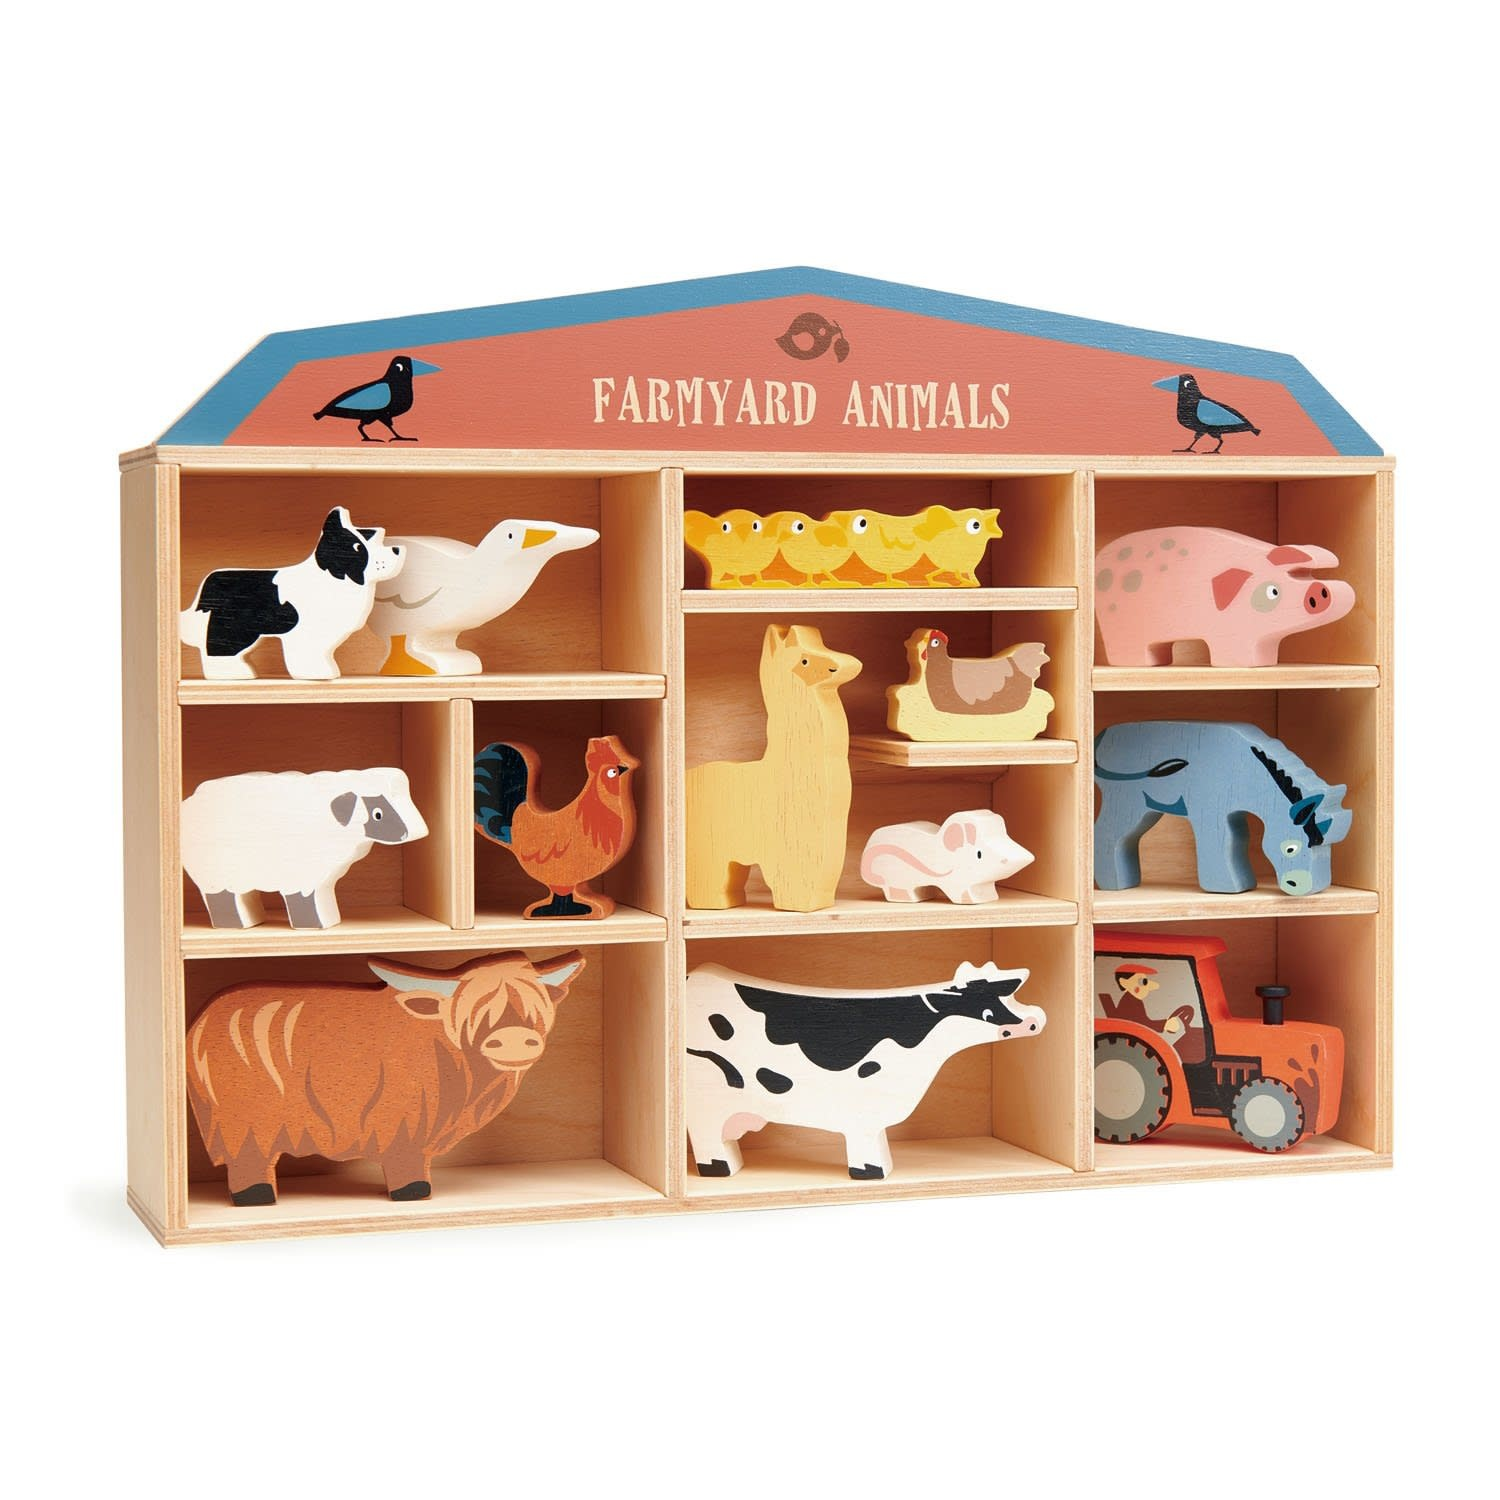 Farmyard Animals Wooden Display Set by Tender Leaf